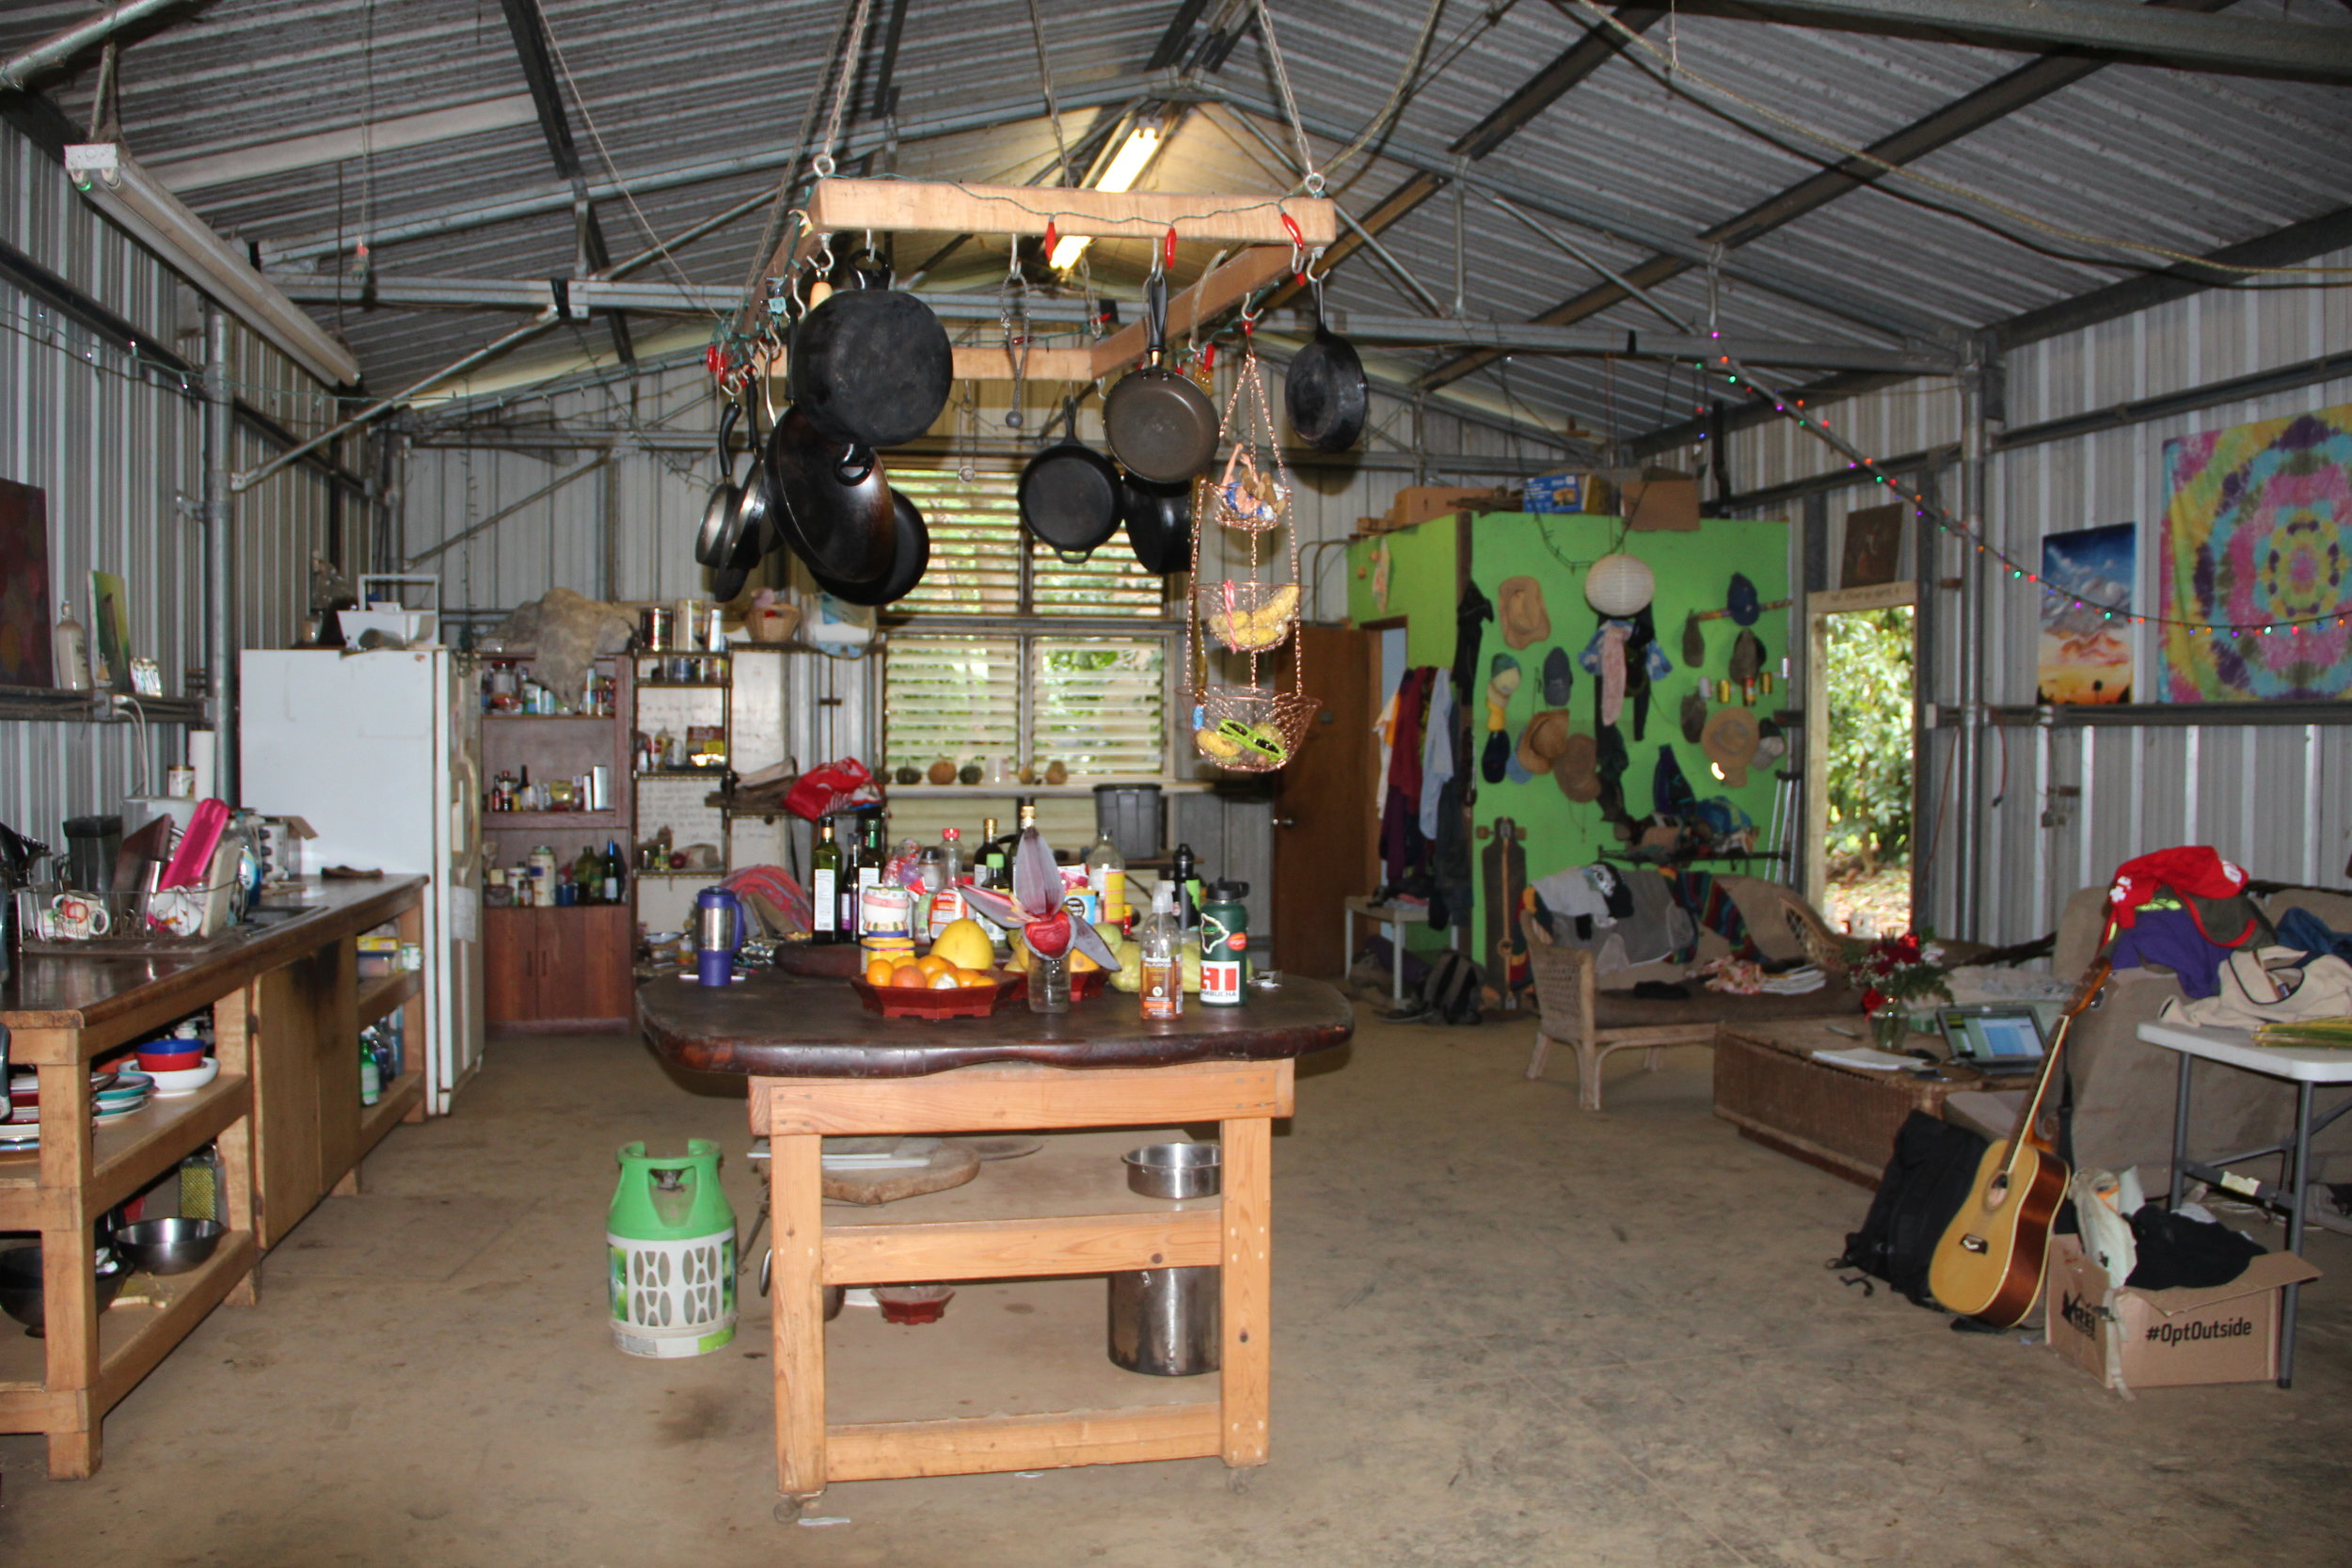 The community space in our warehouse where our apprentices hang out and cook meals.